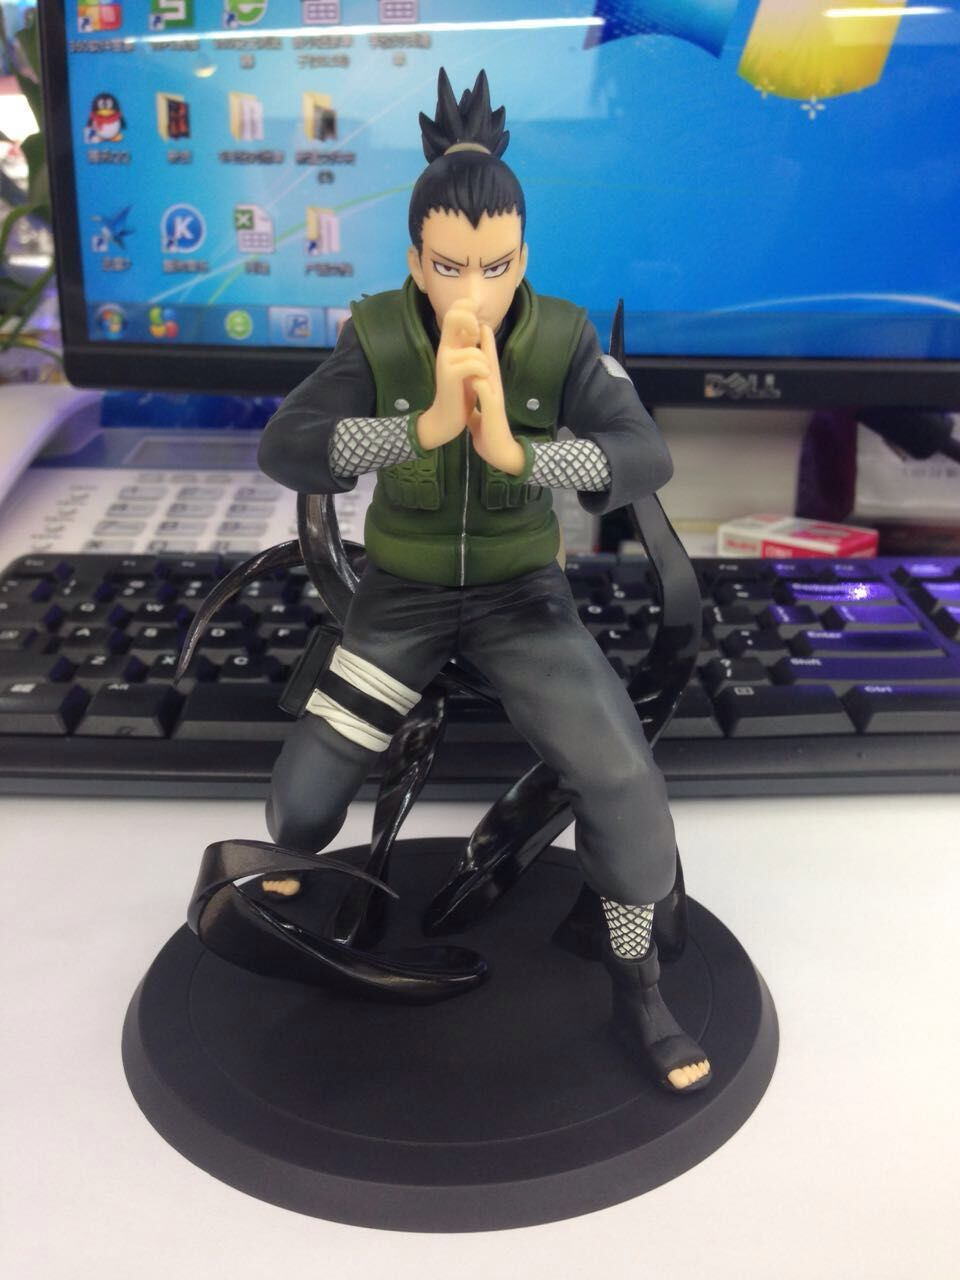 WVW 15CM Hot Sale Anime Heroes Naruto Nara Shikamaru Model PVC Toy Action Figure Decoration For Collection Gift Free shipping